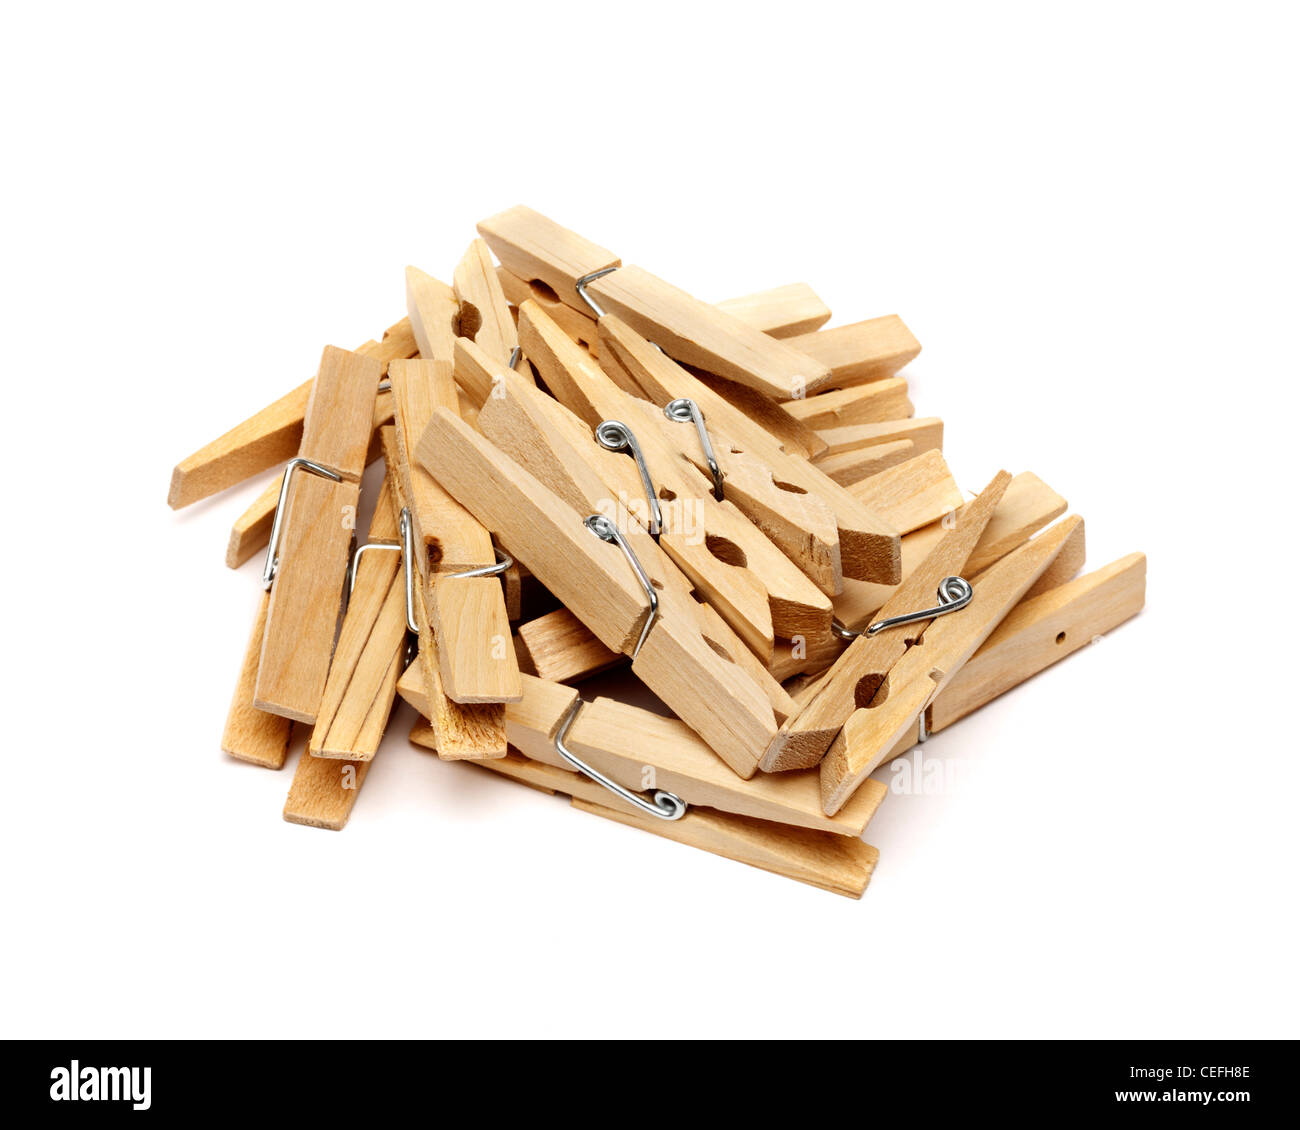 Wooden clothes peg pile on white background - Stock Image